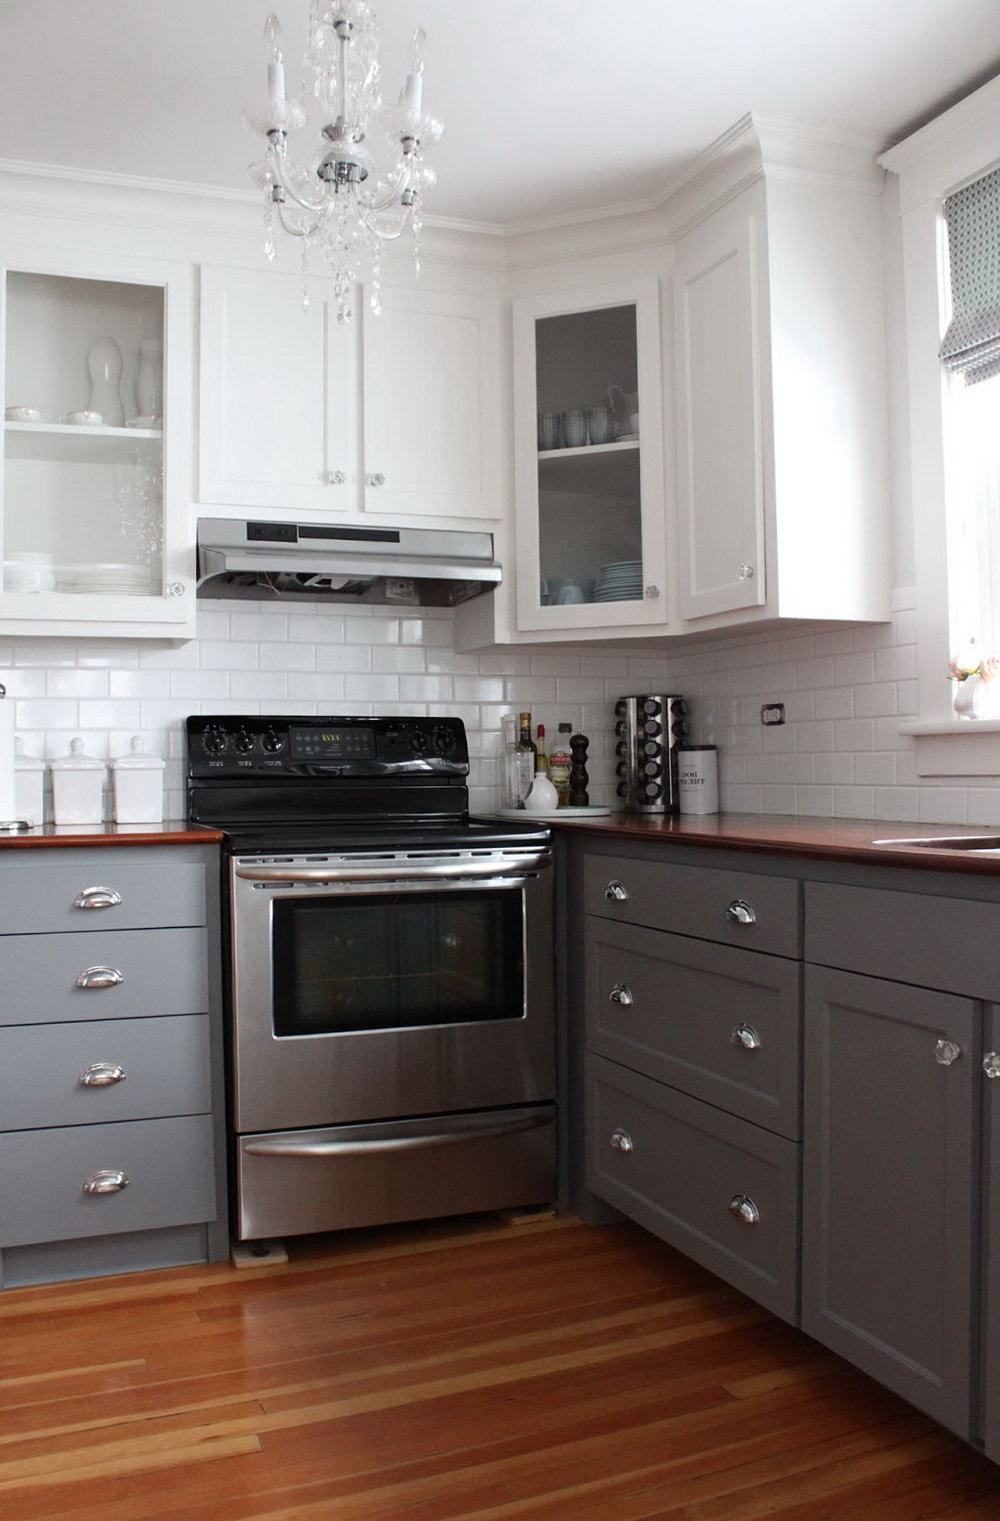 Two Tone Painted Kitchen Cabinets Ideas Using Bm Whale Gray